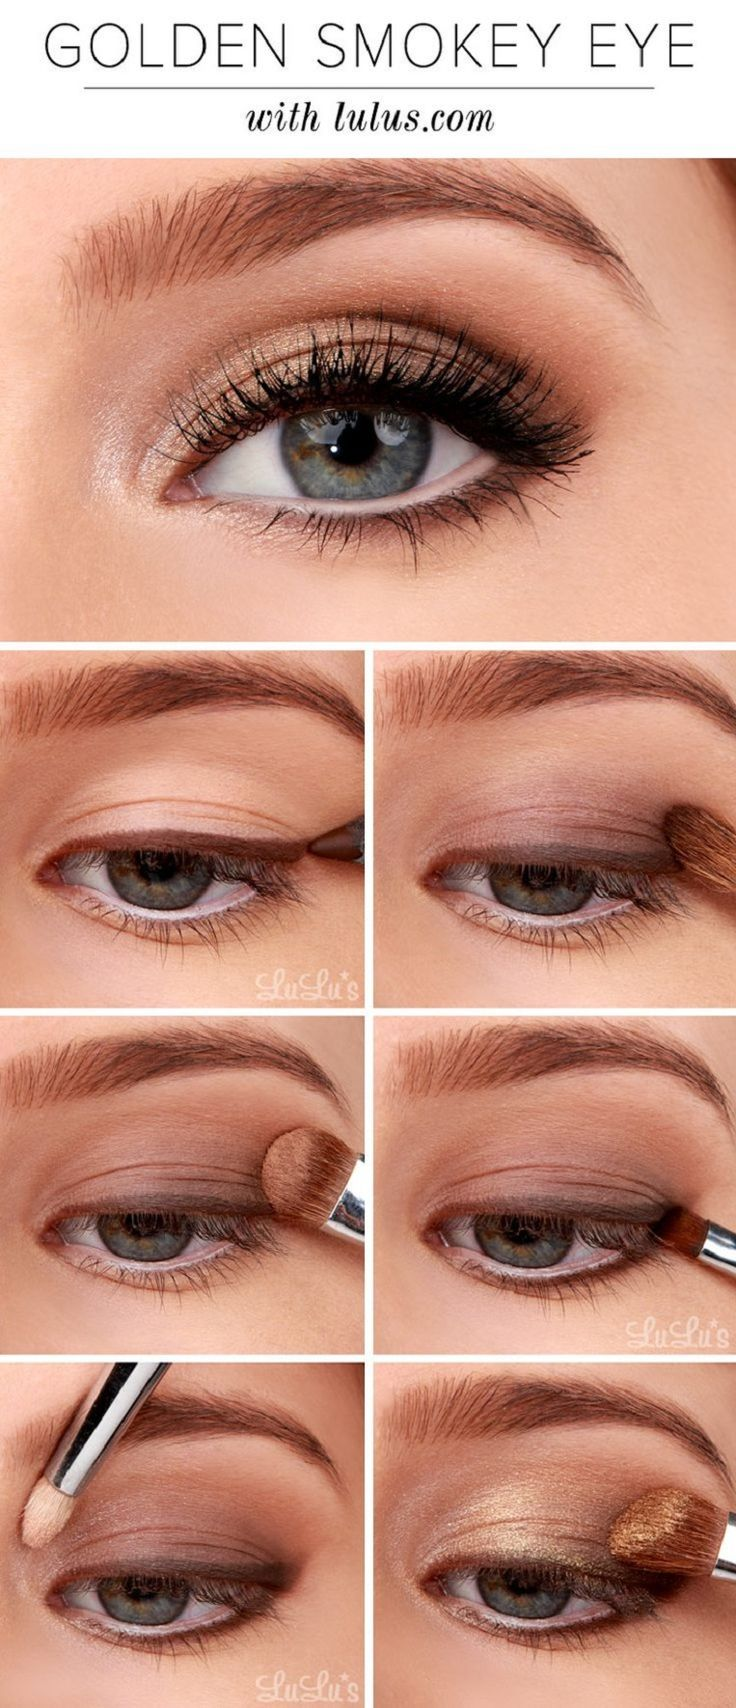 Natural Makeup Ideas - Golden Smokey Eye Tutorial - 10 Brown Eyeshadow Tutorials for Seductive Eyes - GleamItUp